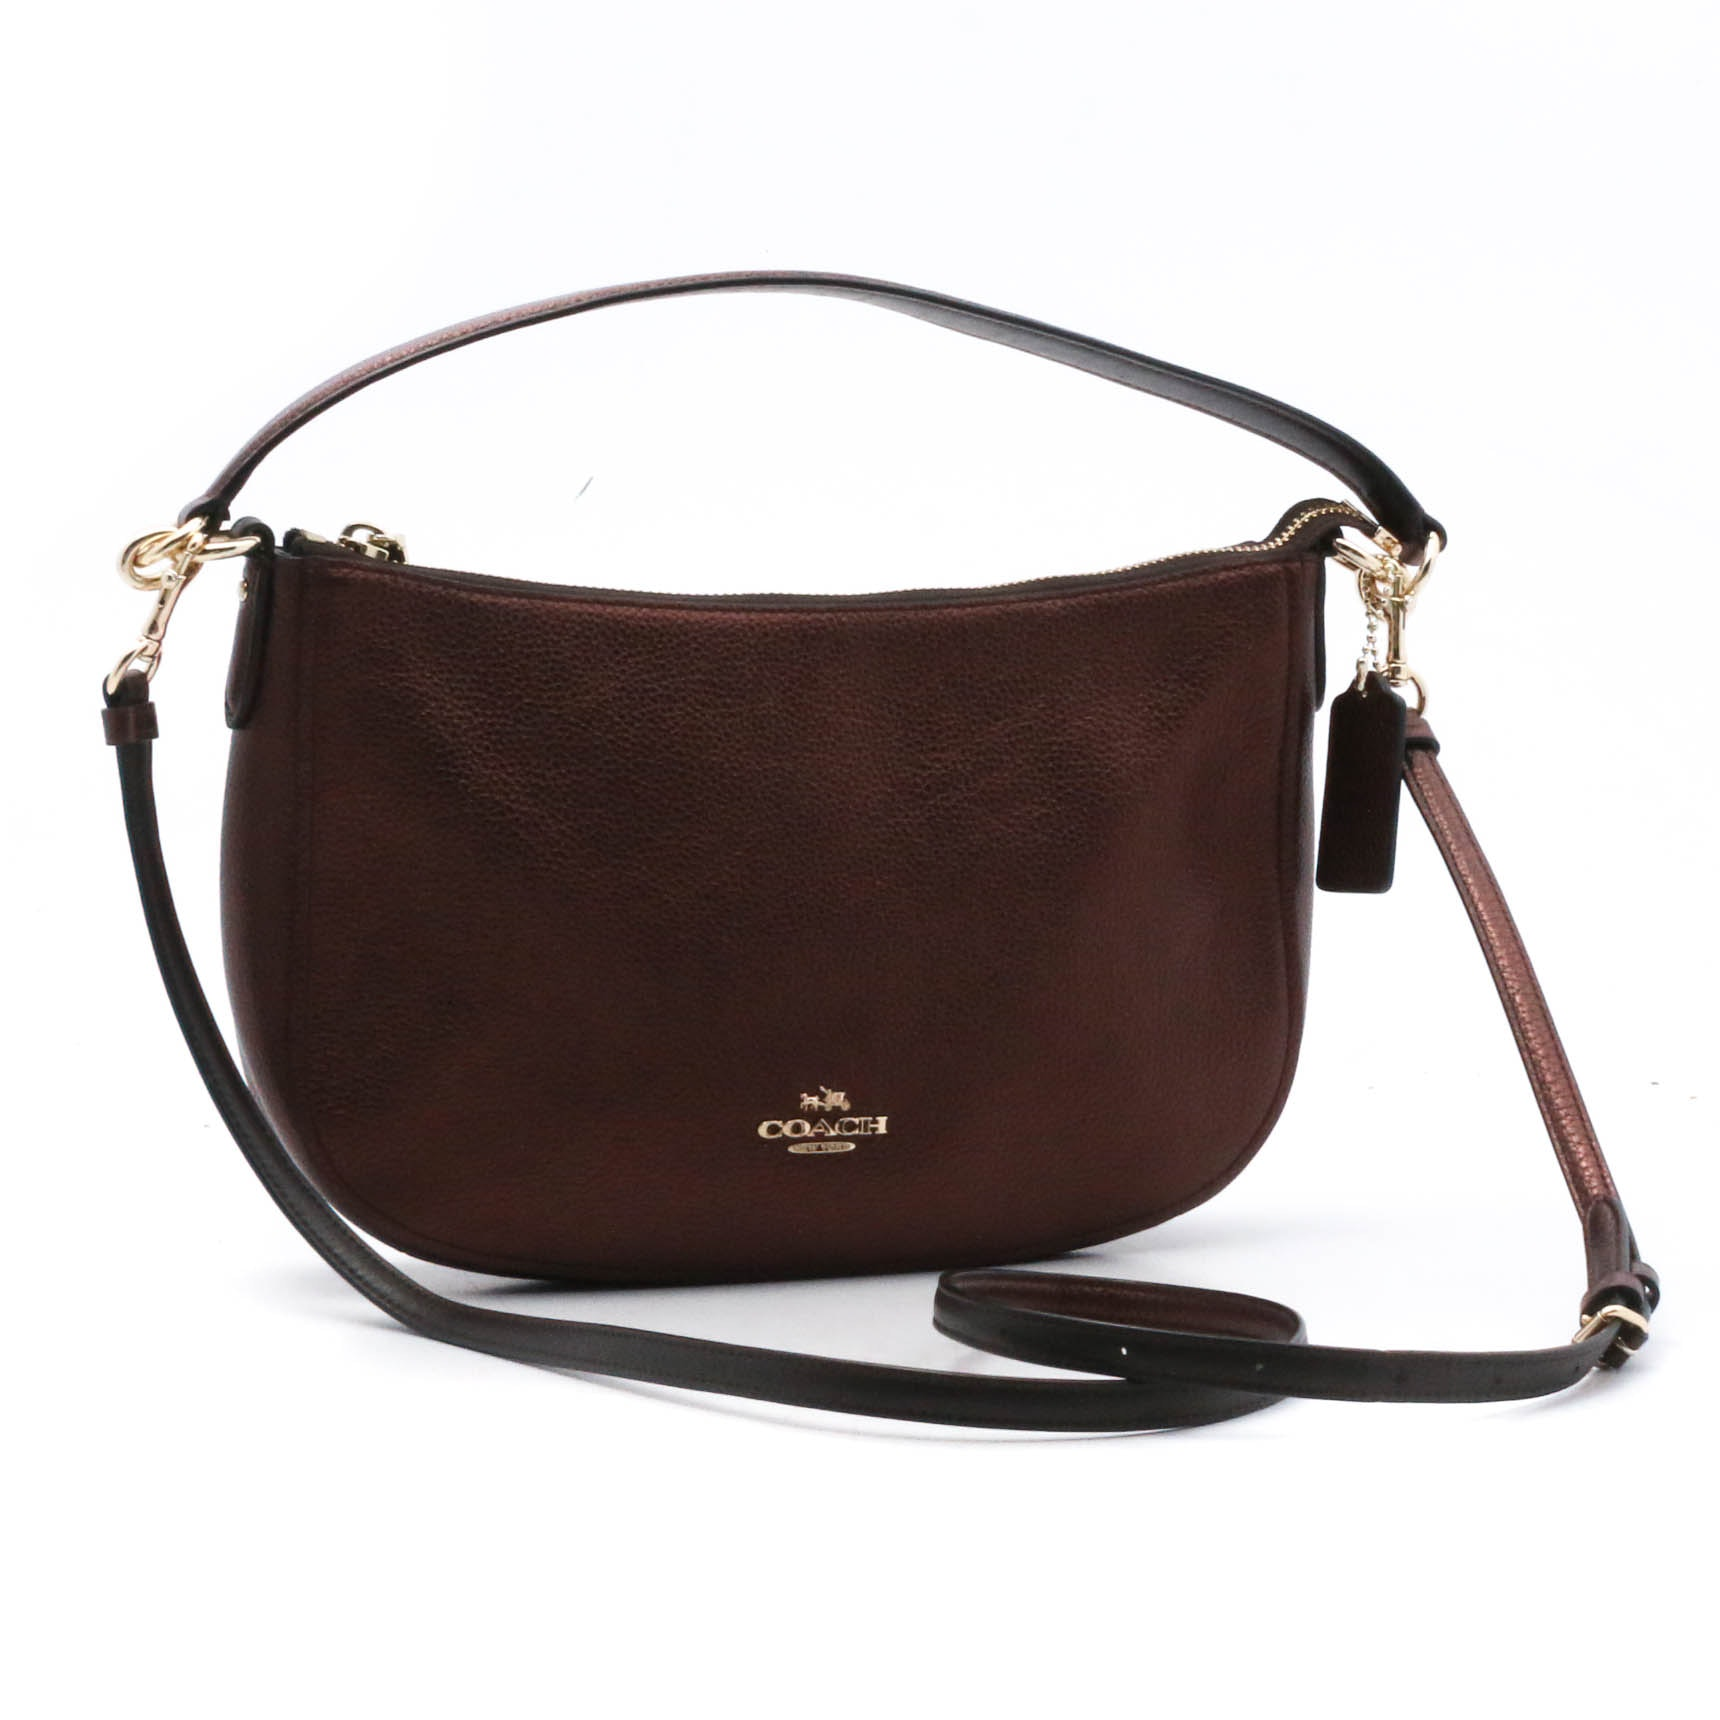 Coach Brown Pebbled Faux Leather Handbag